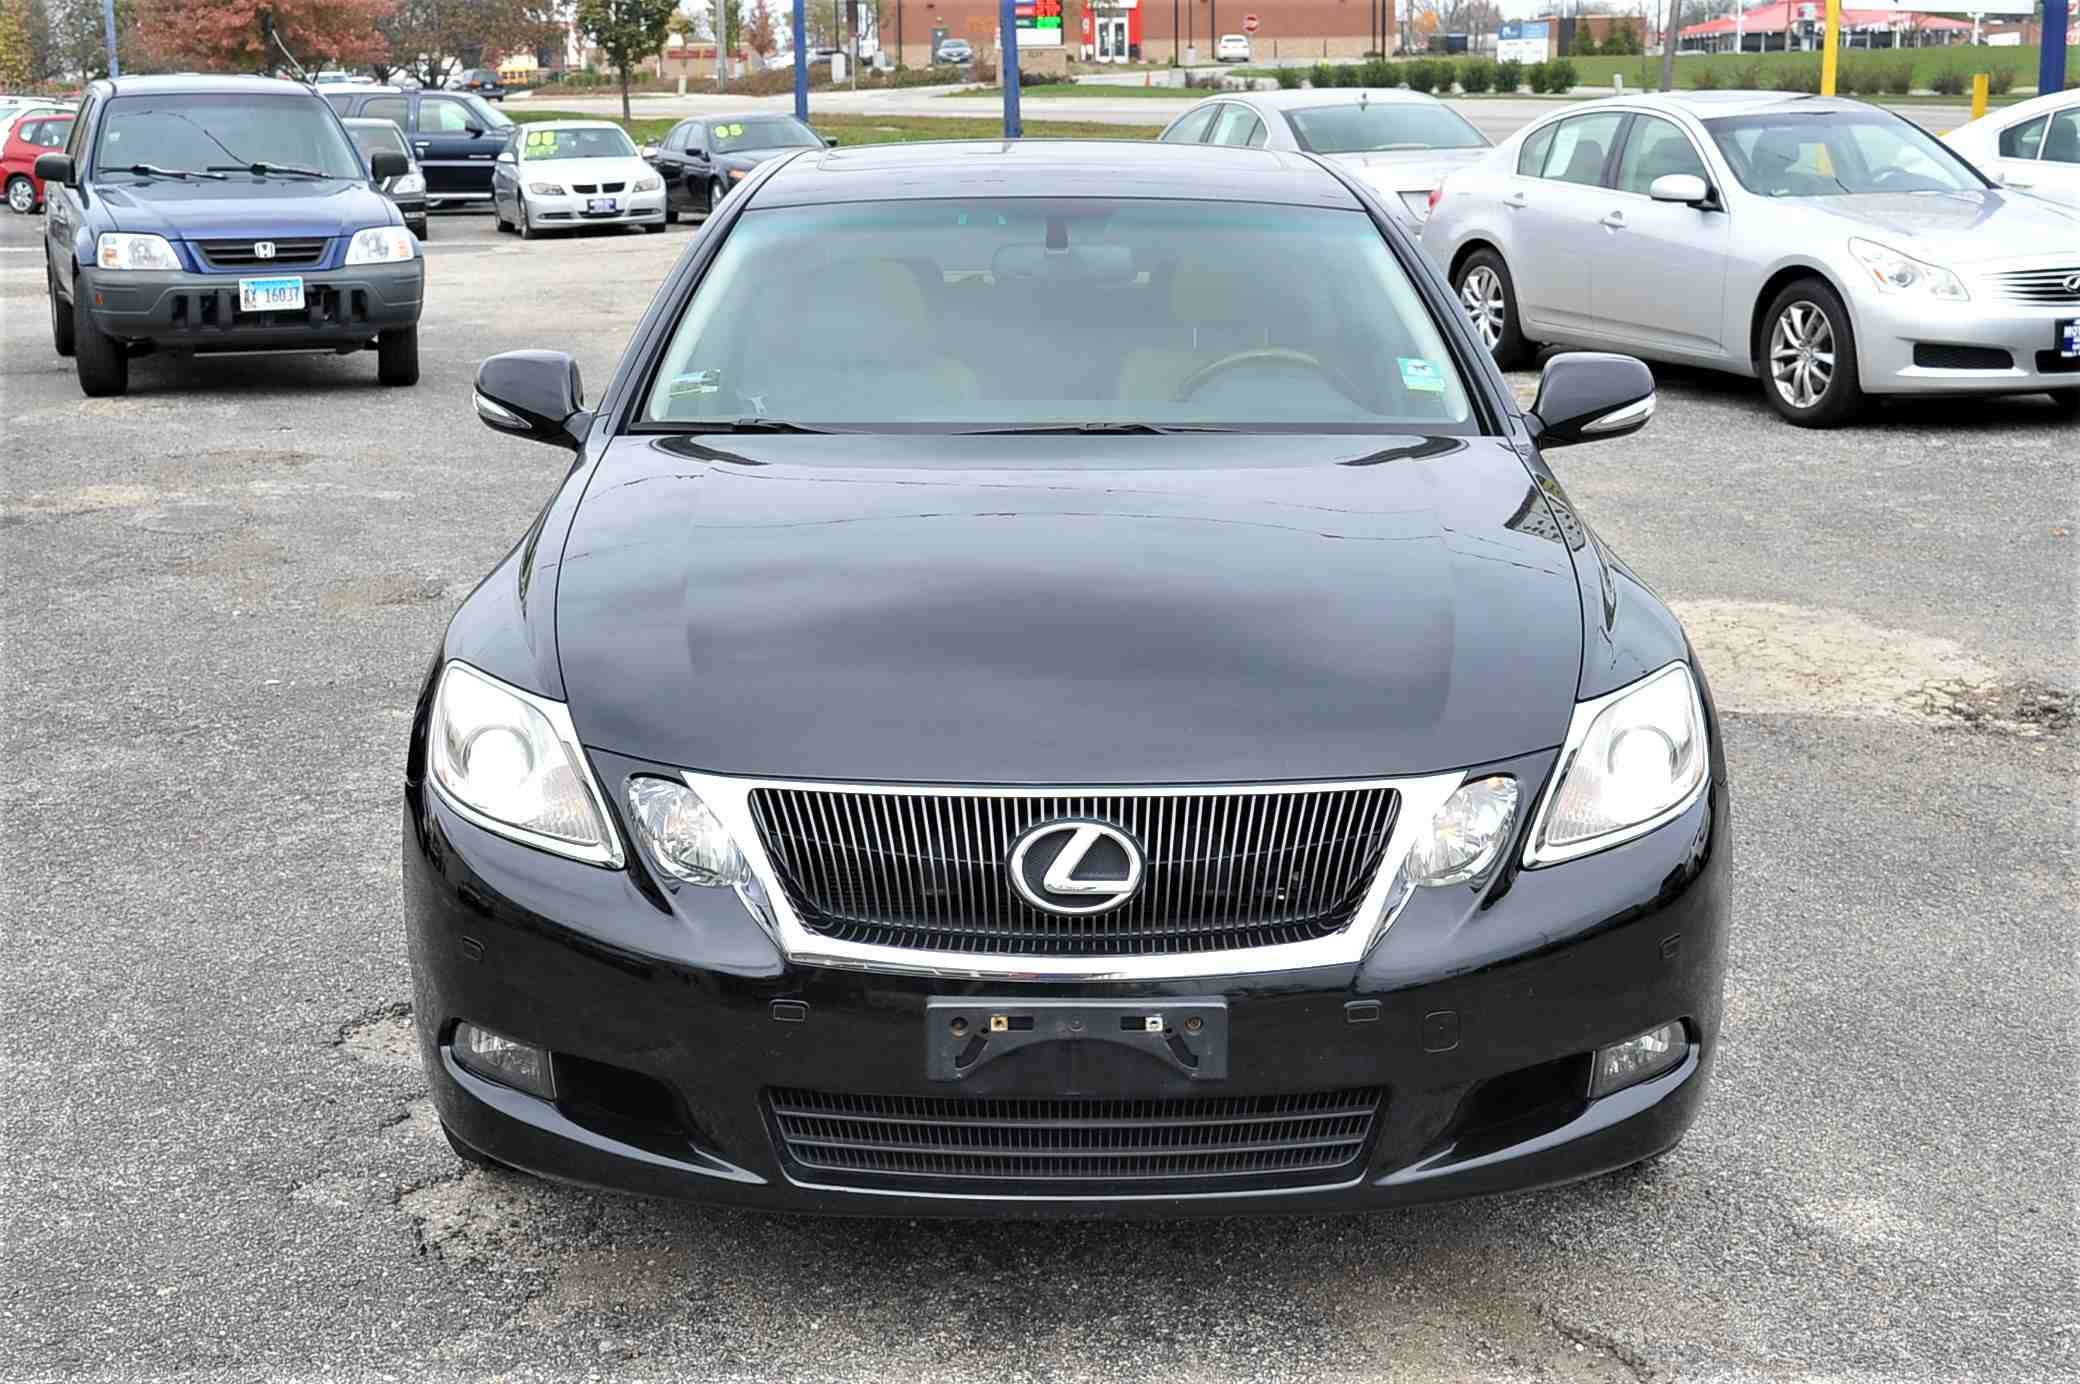 2008 Lexus GS350 Navigation Black AWD Sedan Sale Gurnee Kenosha Mchenry Chicago Illinois